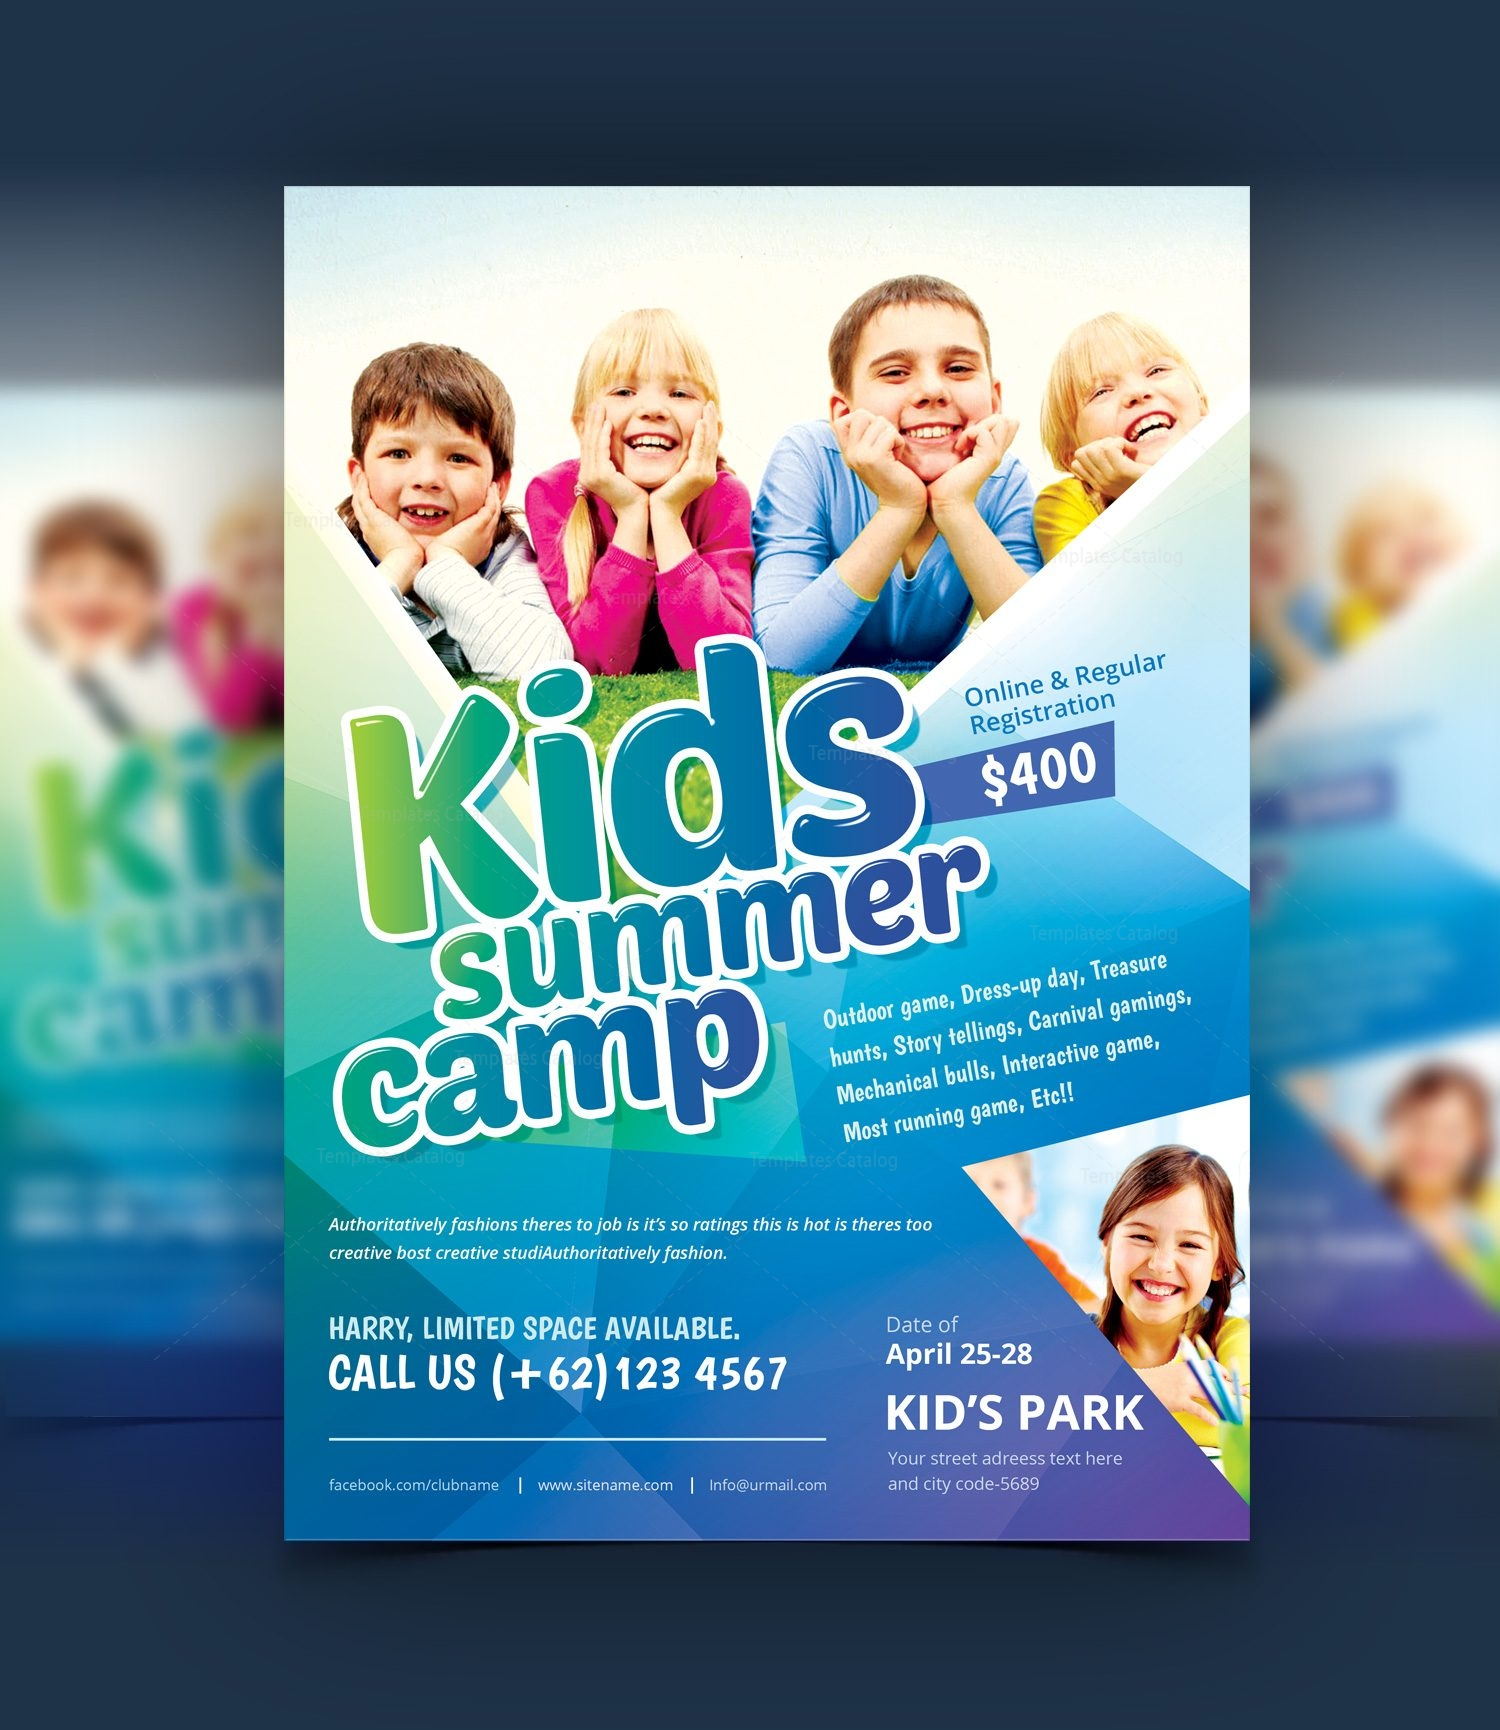 stylish kids camp party flyer template 001077